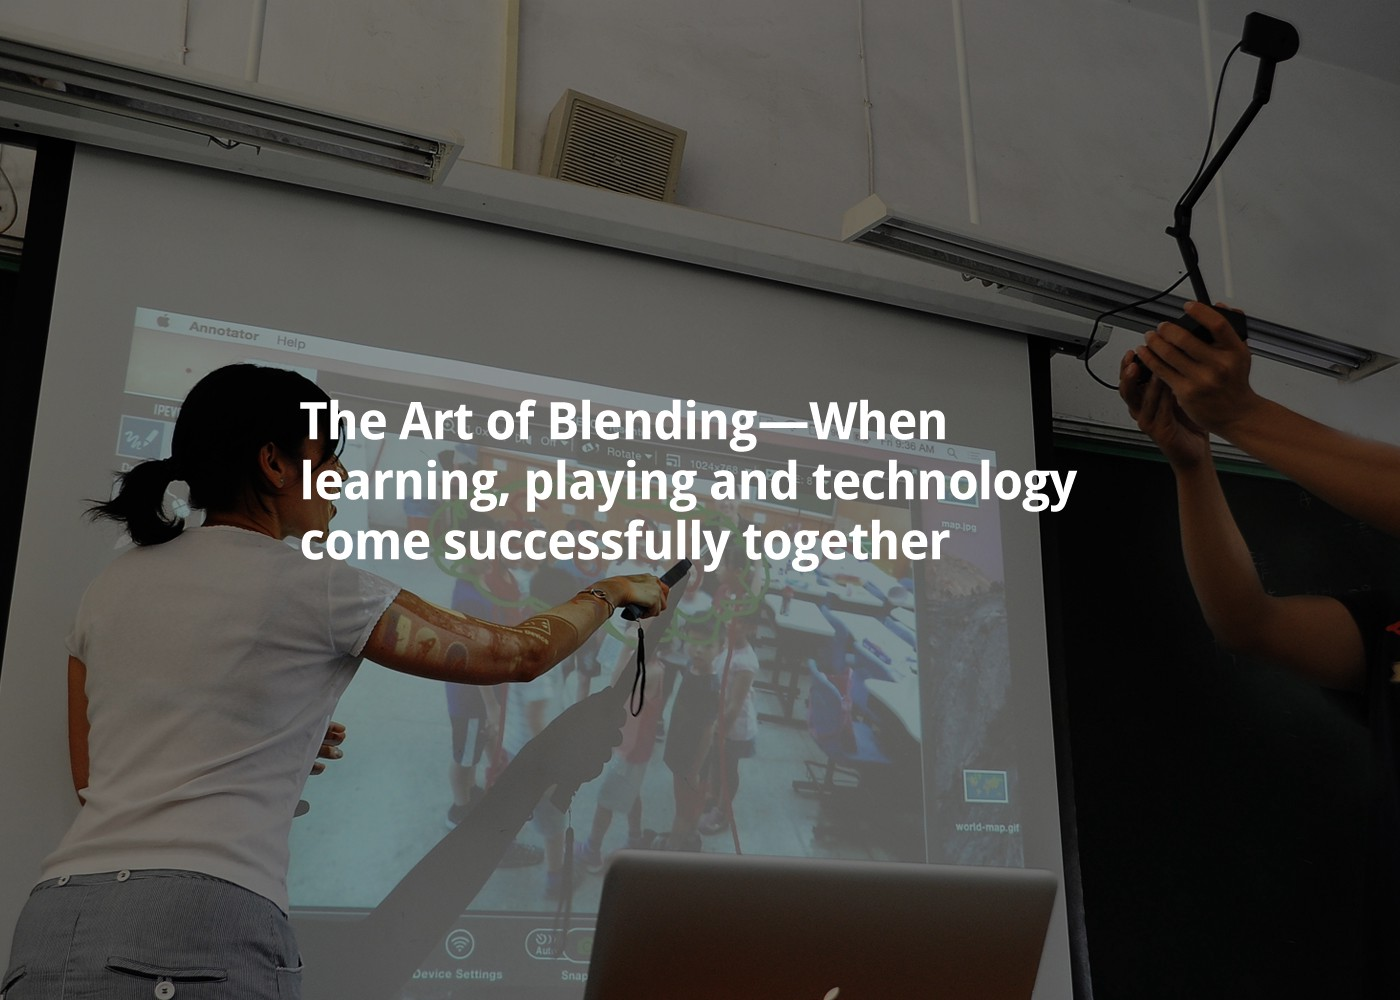 The Art of Blending—When learning, playing and technology come successfully together